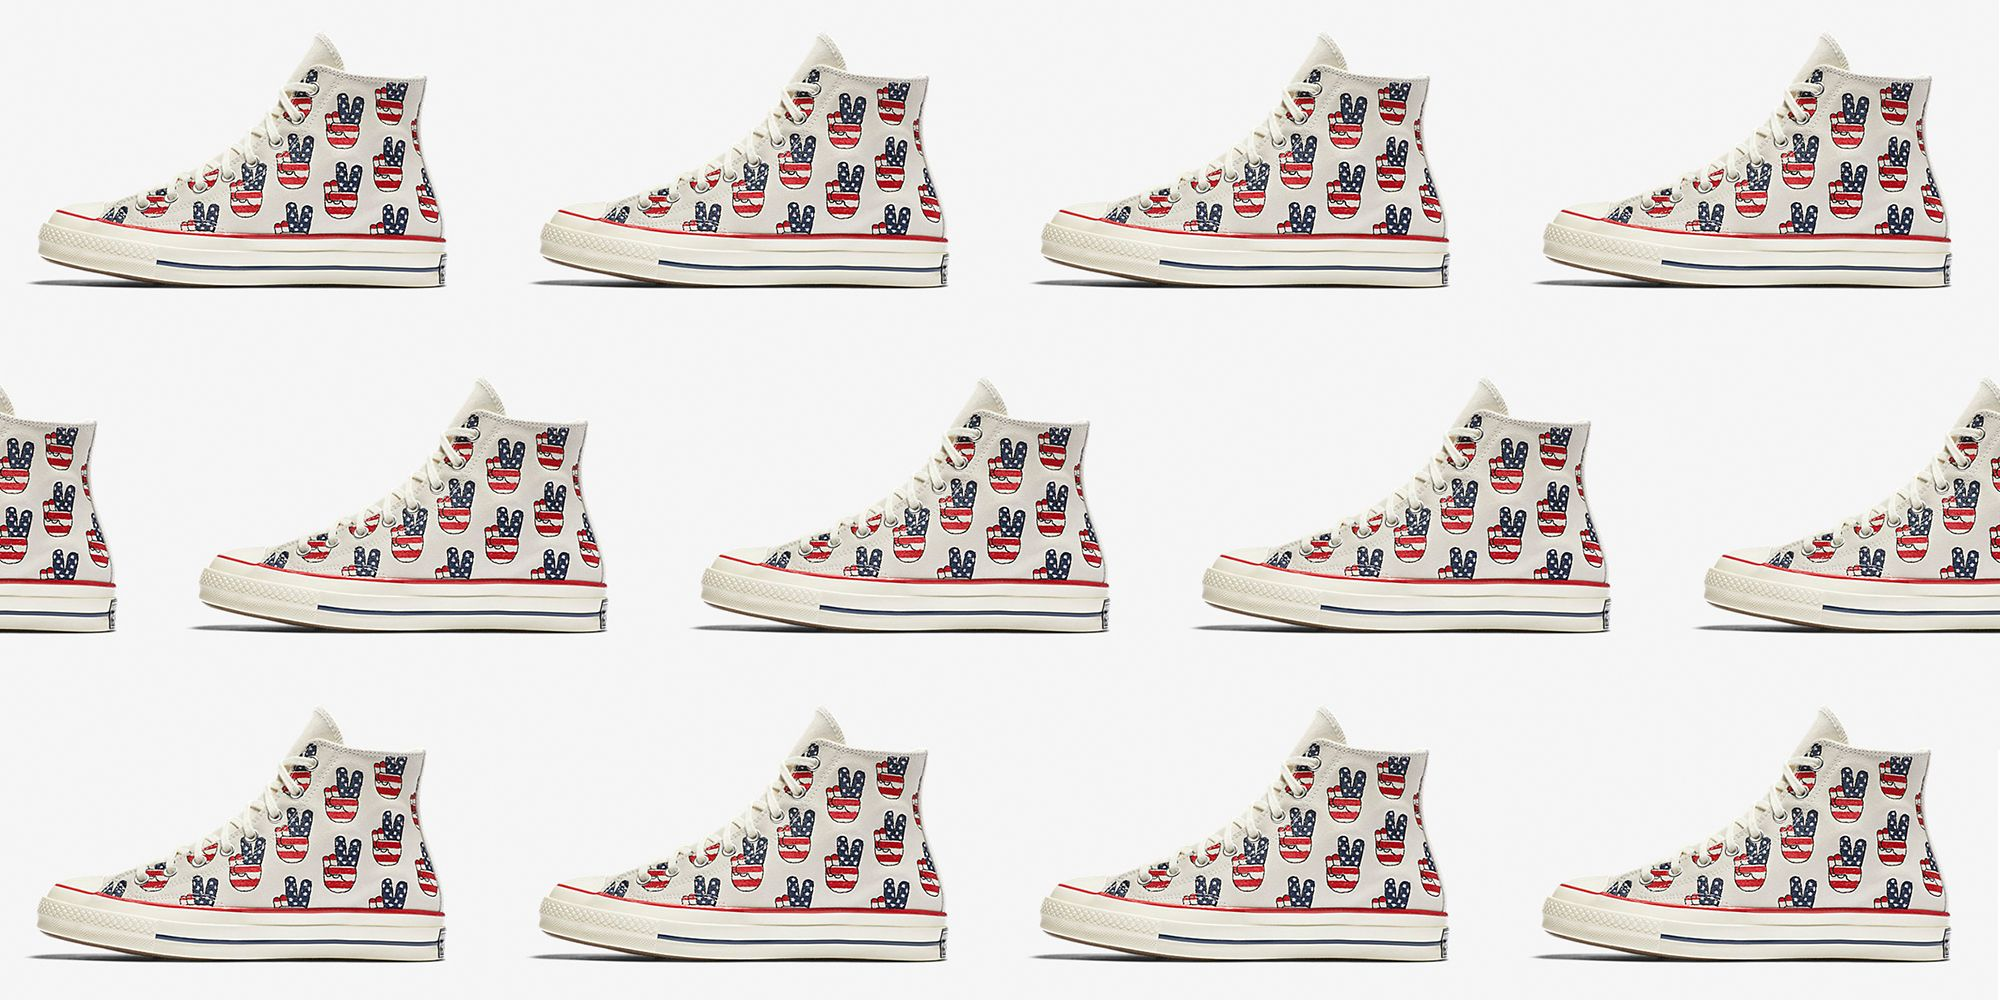 Converse Limited Edition Election Day Chuck Taylor All Star Sneakers 2018 08ac552a4